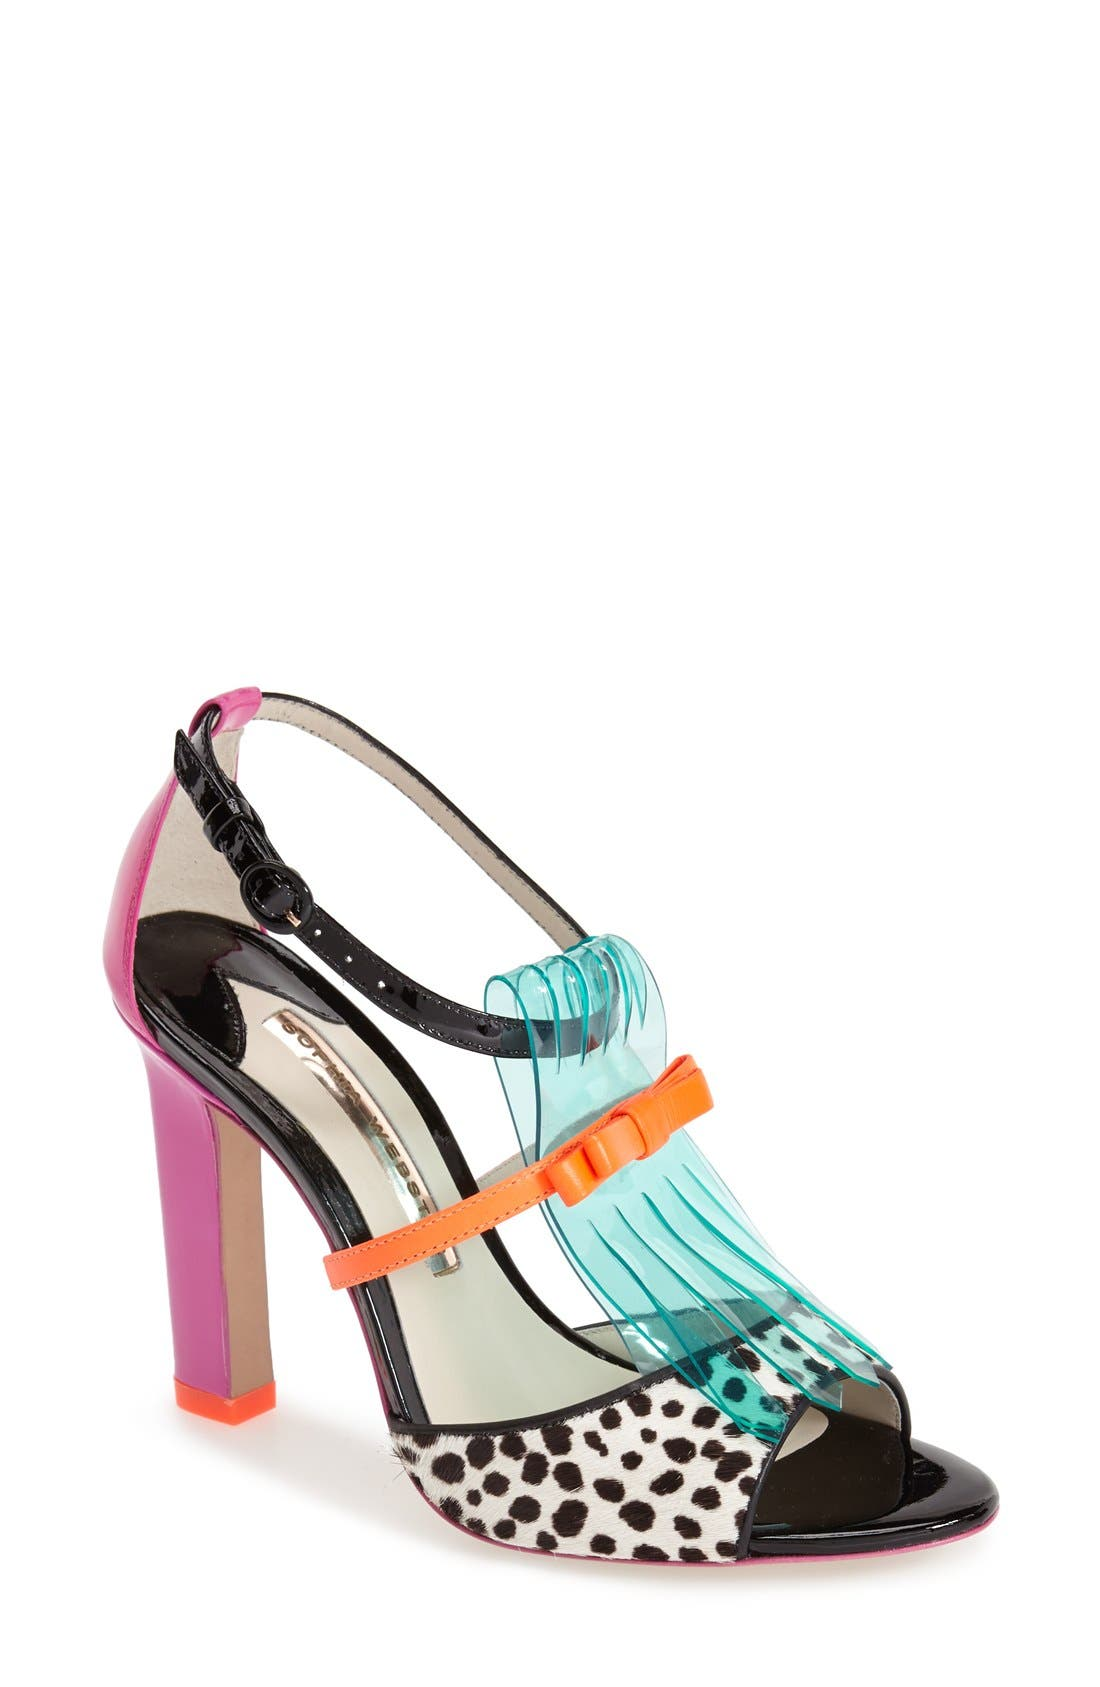 Main Image - Sophia Webster 'Verity Polka' Sandal (Women)